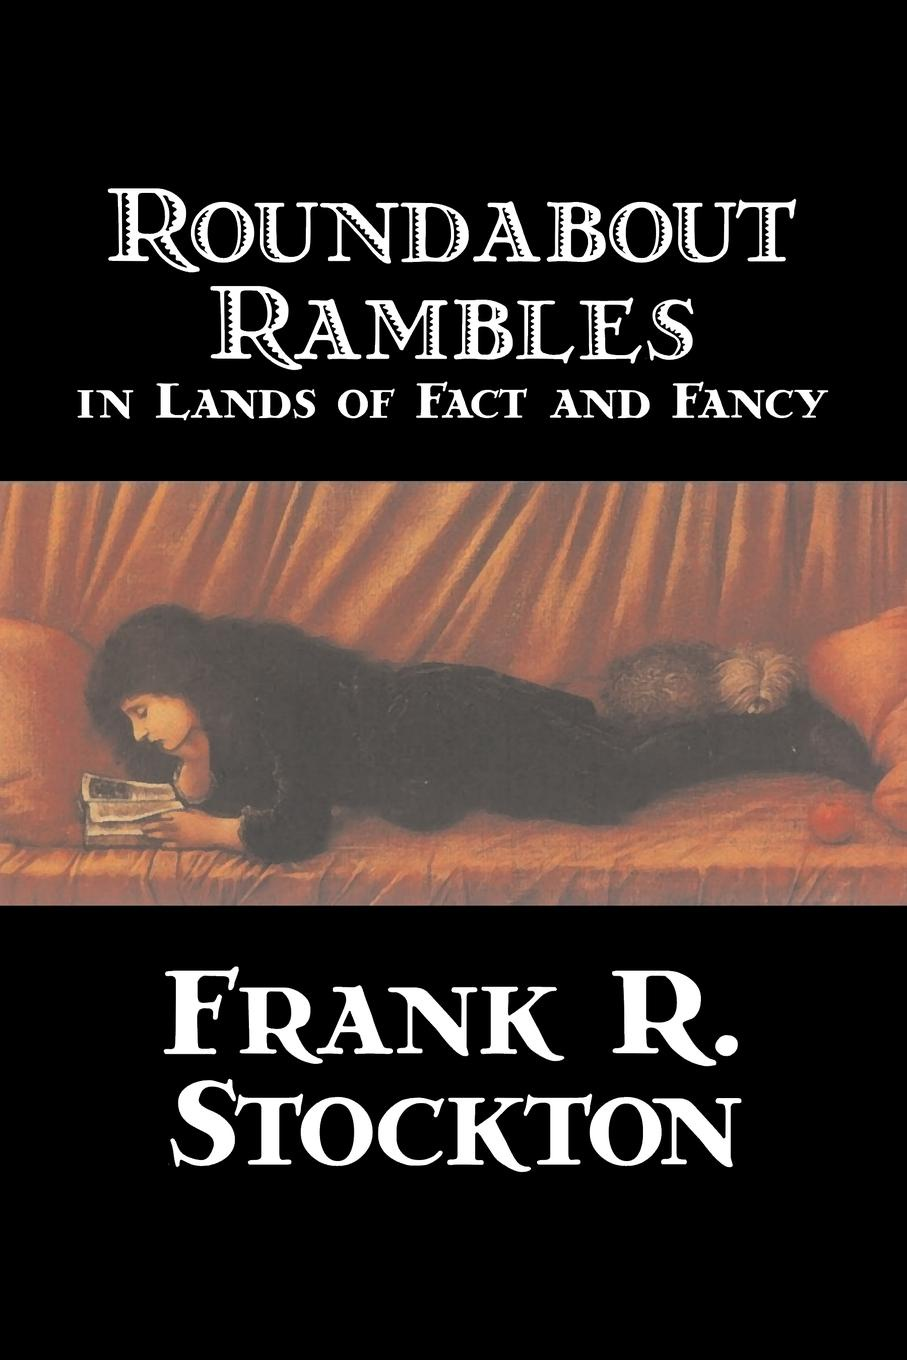 Frank R. Stockton Roundabout Rambles in Lands of Fact and Fancy by Frank R. Stockton, Fiction, Fantasy ryan d all we shall know